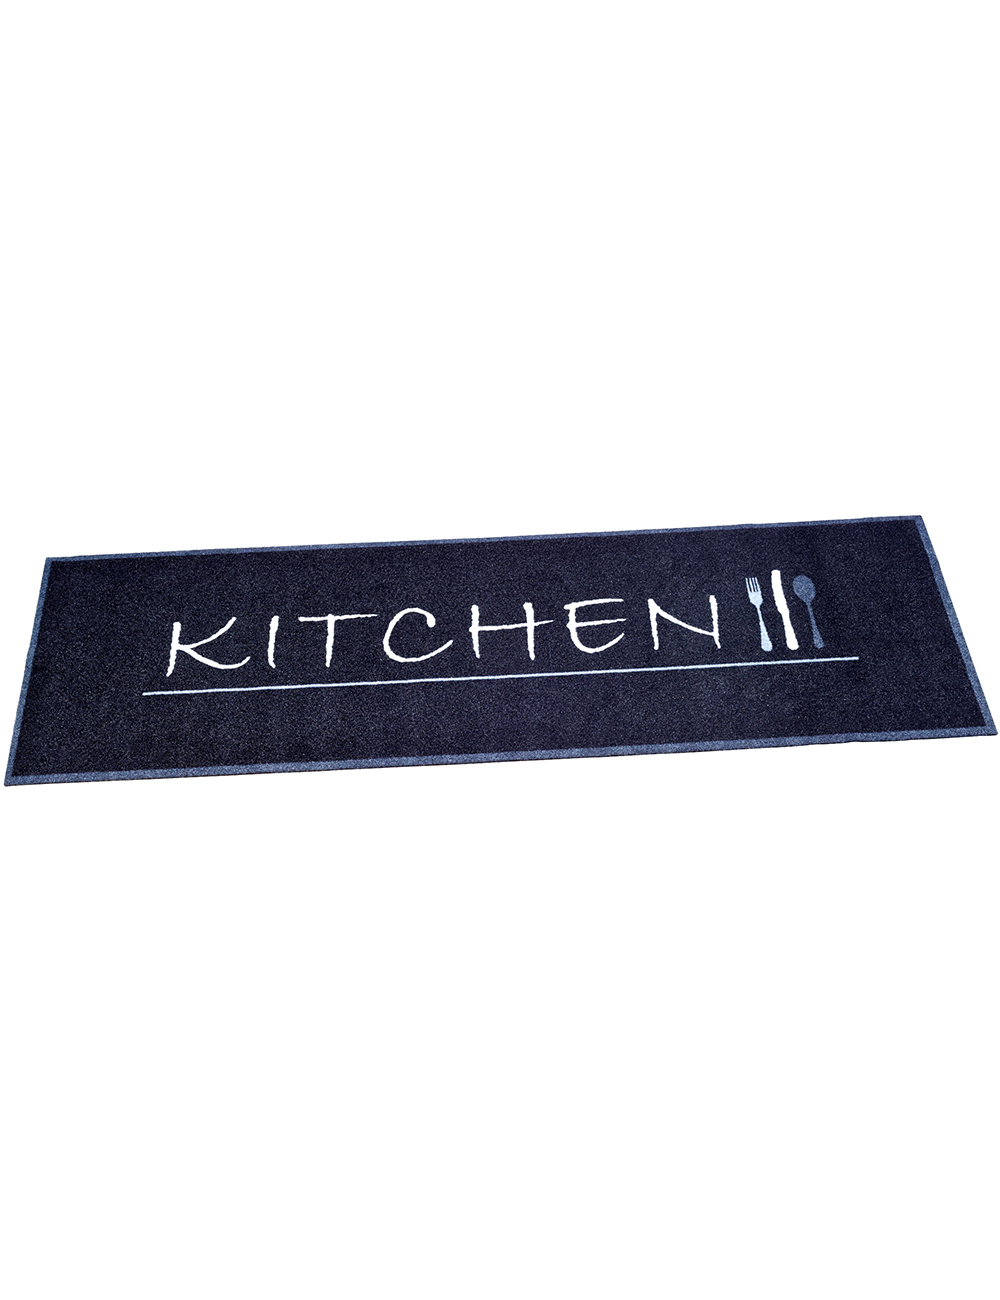 tapis de cuisine kitchen moderne et de qualit. Black Bedroom Furniture Sets. Home Design Ideas